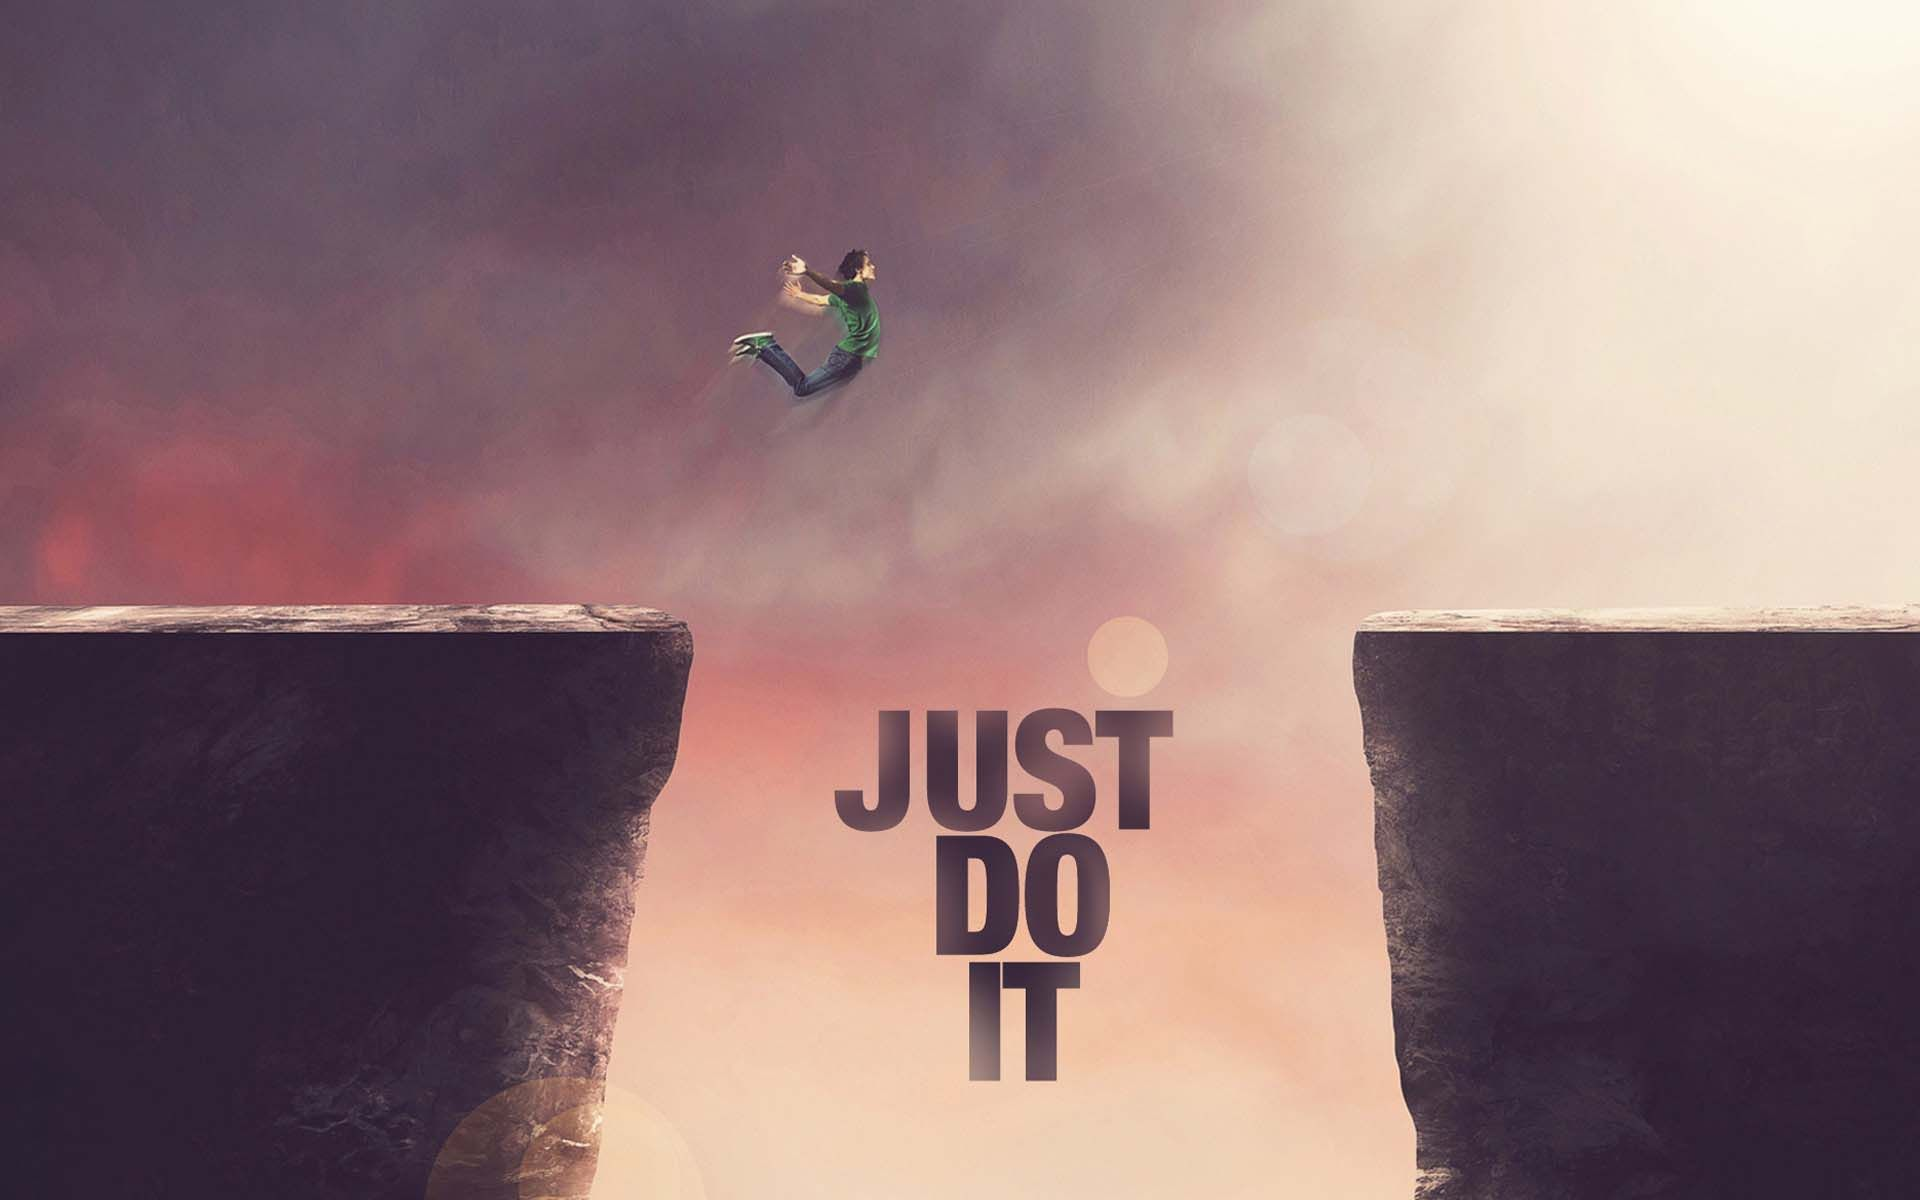 Just do it – AGIR et Passer à l'action